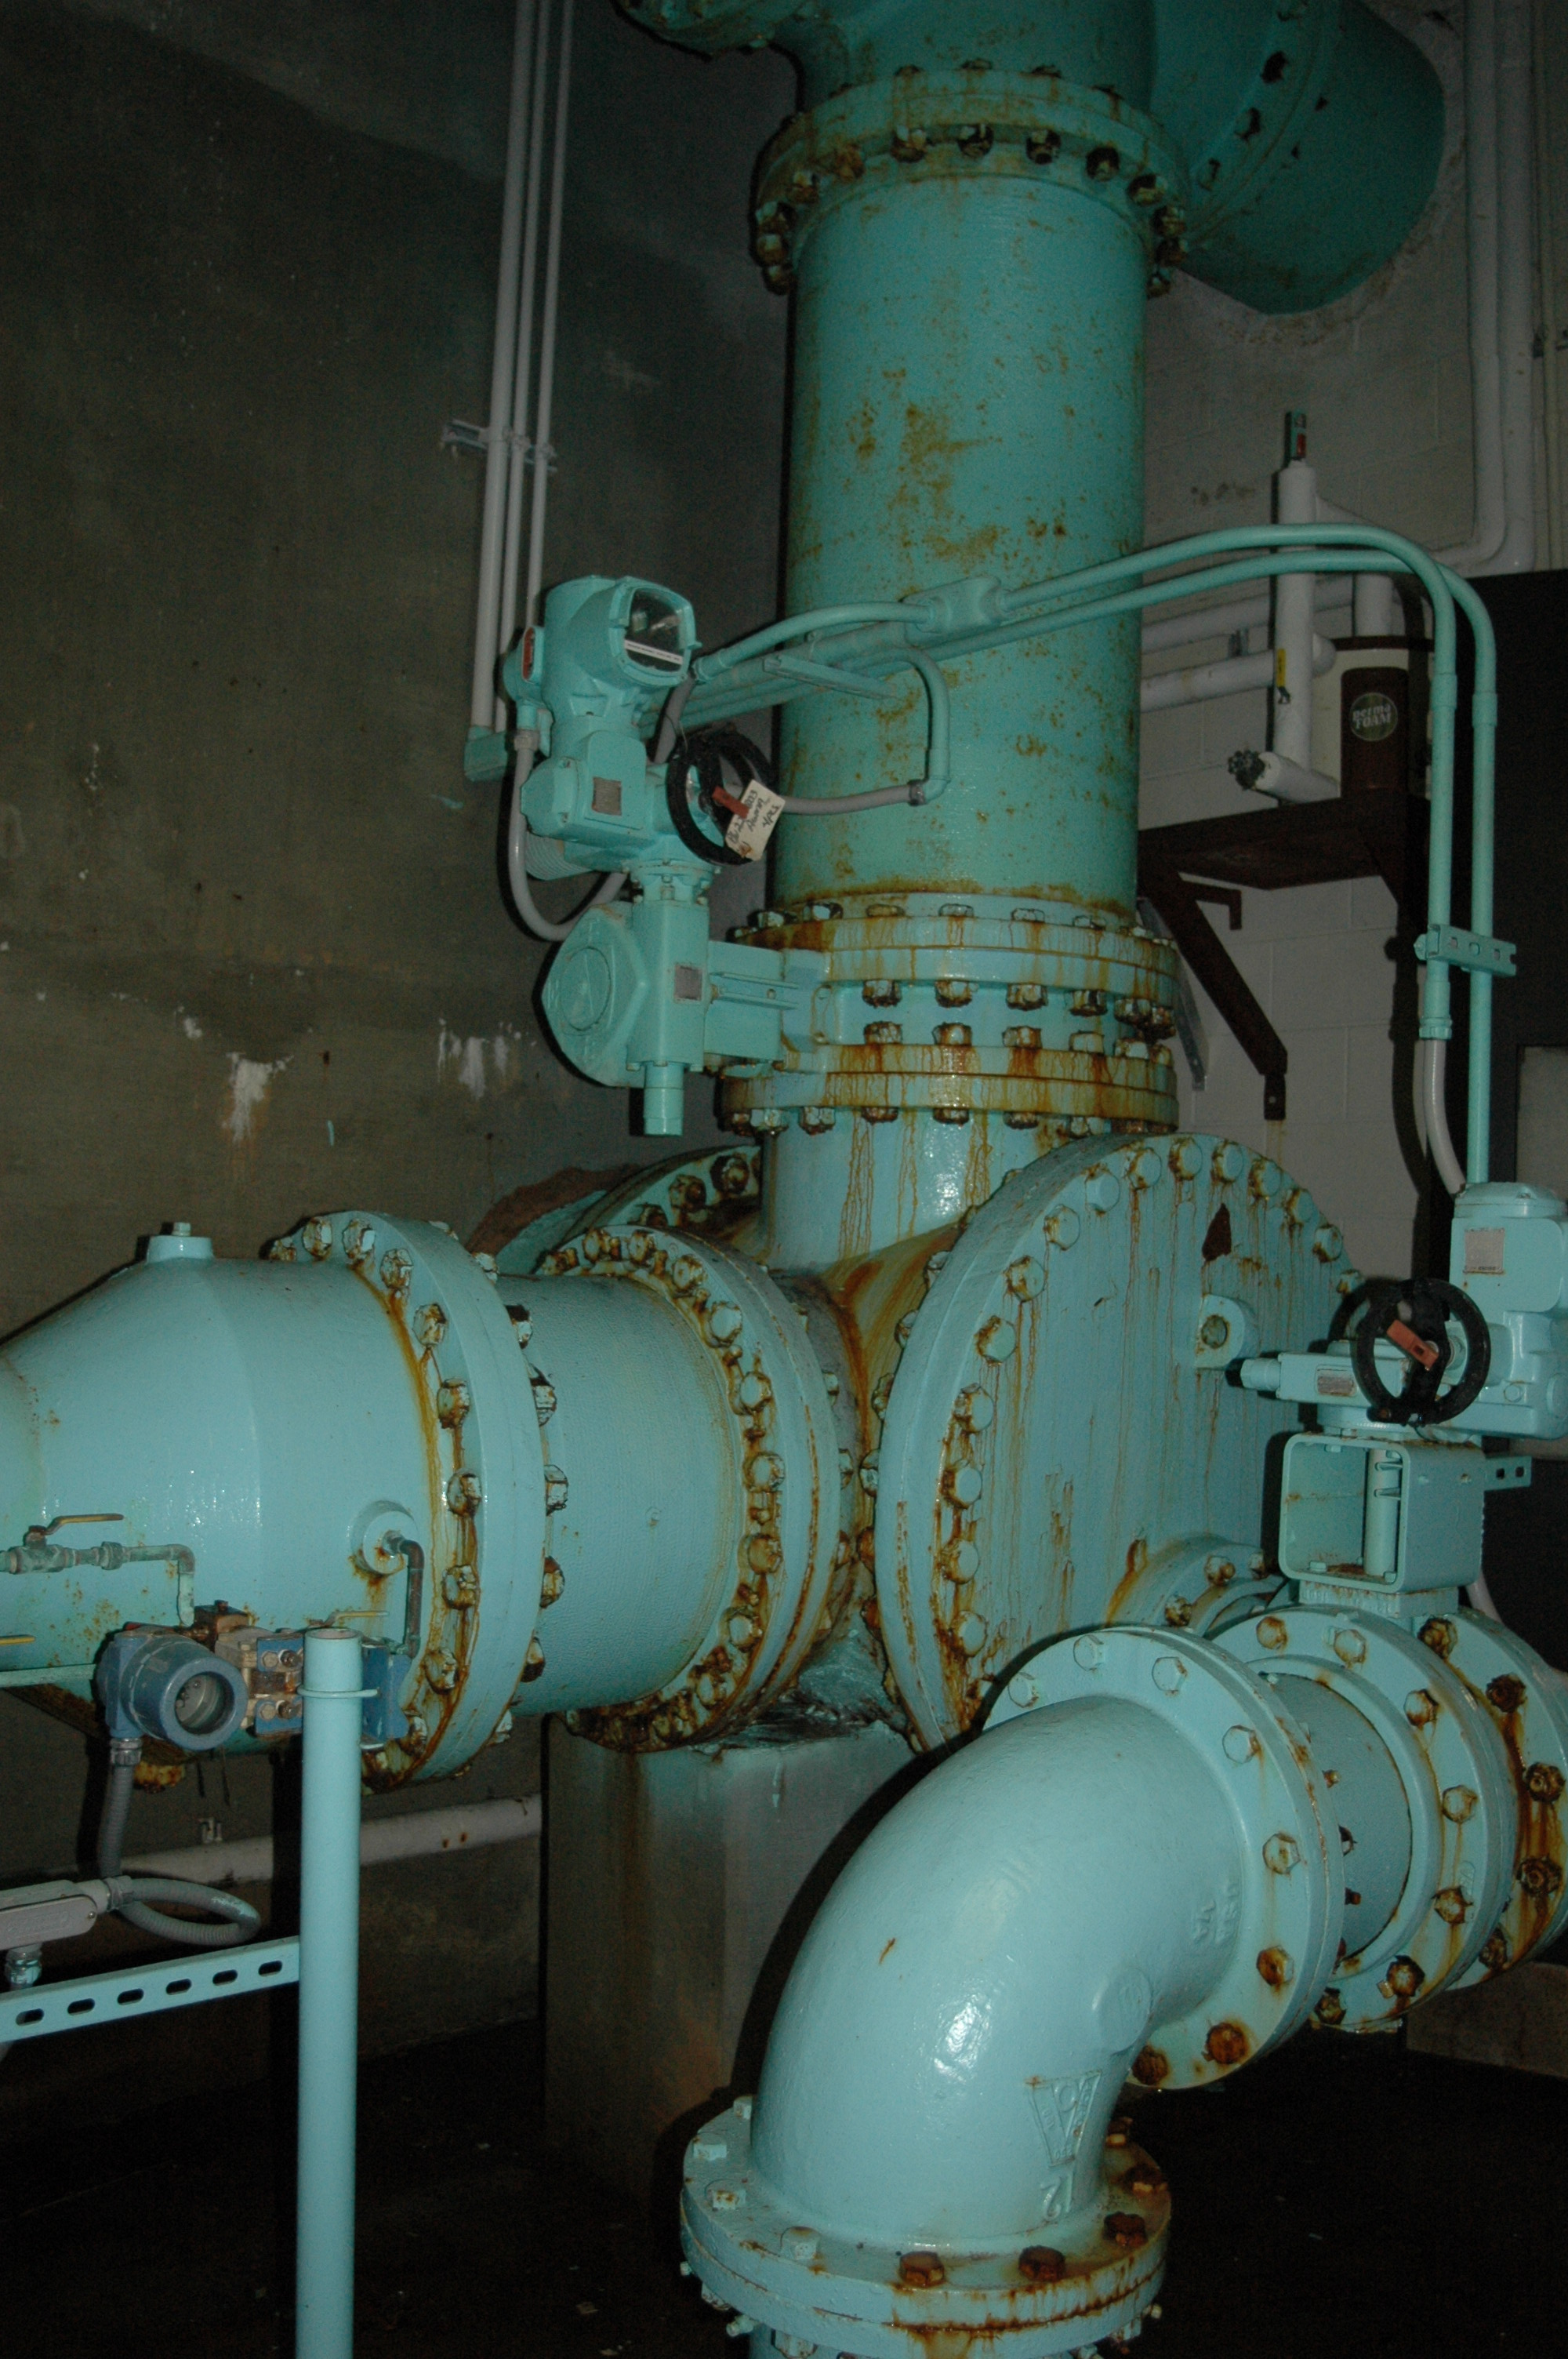 Corrosion Control Pipe Gallery - Before - North Fork WTP